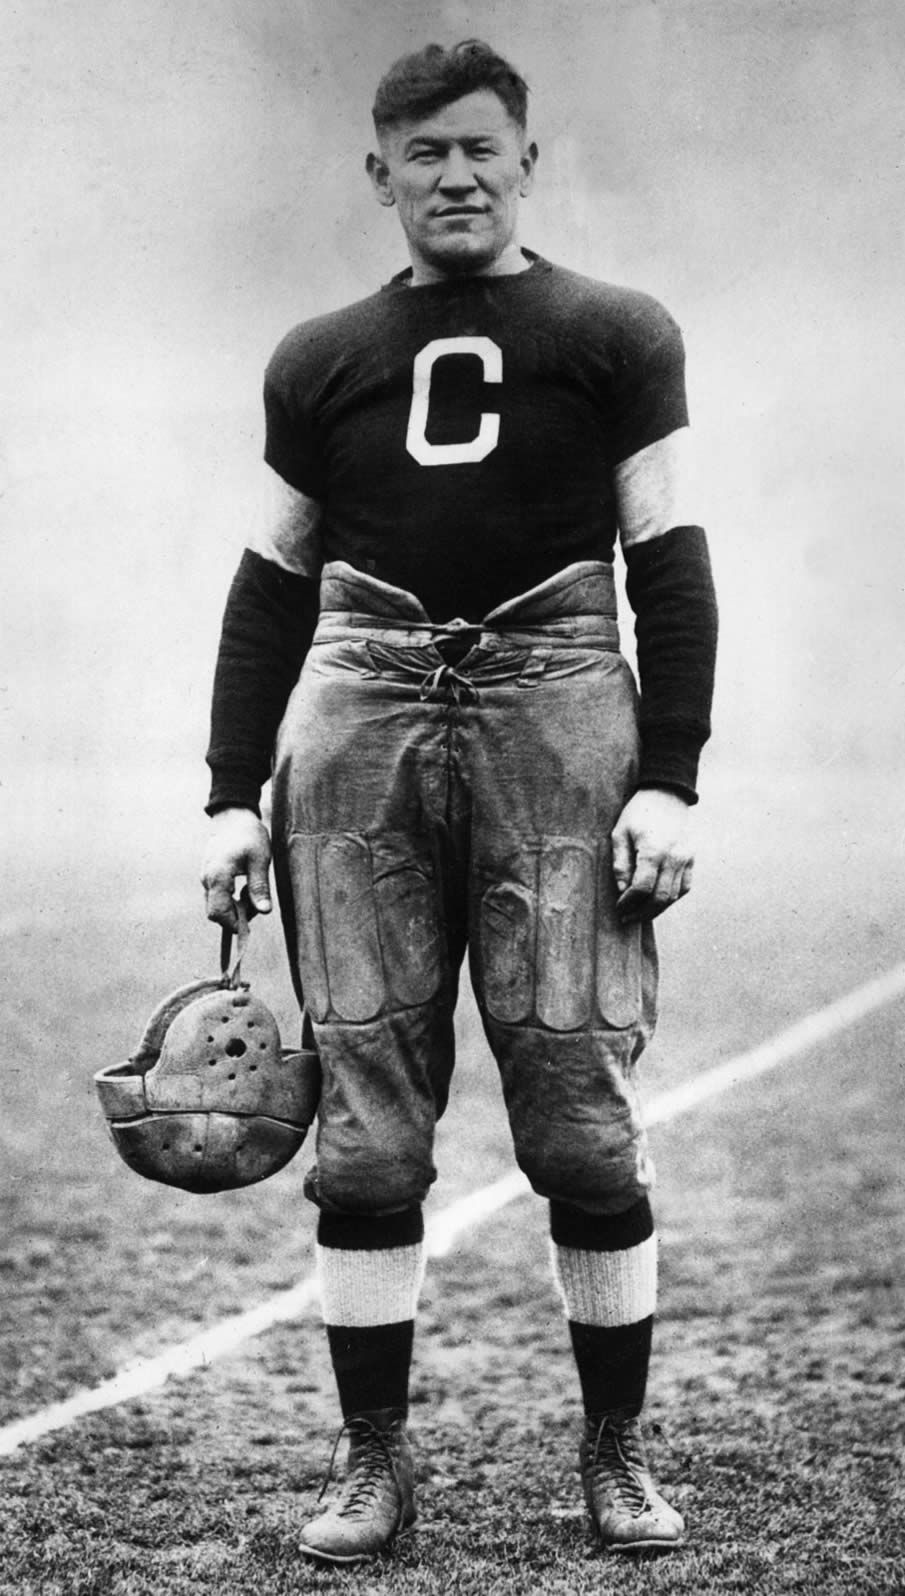 """James Francis """"Jim"""" Thorpe (May 28, 1888 – March 28, 1953) was an American athlete of mixed ancestry (Caucasian and Native American). Considered one of the most versatile athletes of modern sports, he won Olympic gold medals for the 1912 pentathlon and decathlon, played American football (collegiate and professional), and also played professional baseball and basketball."""